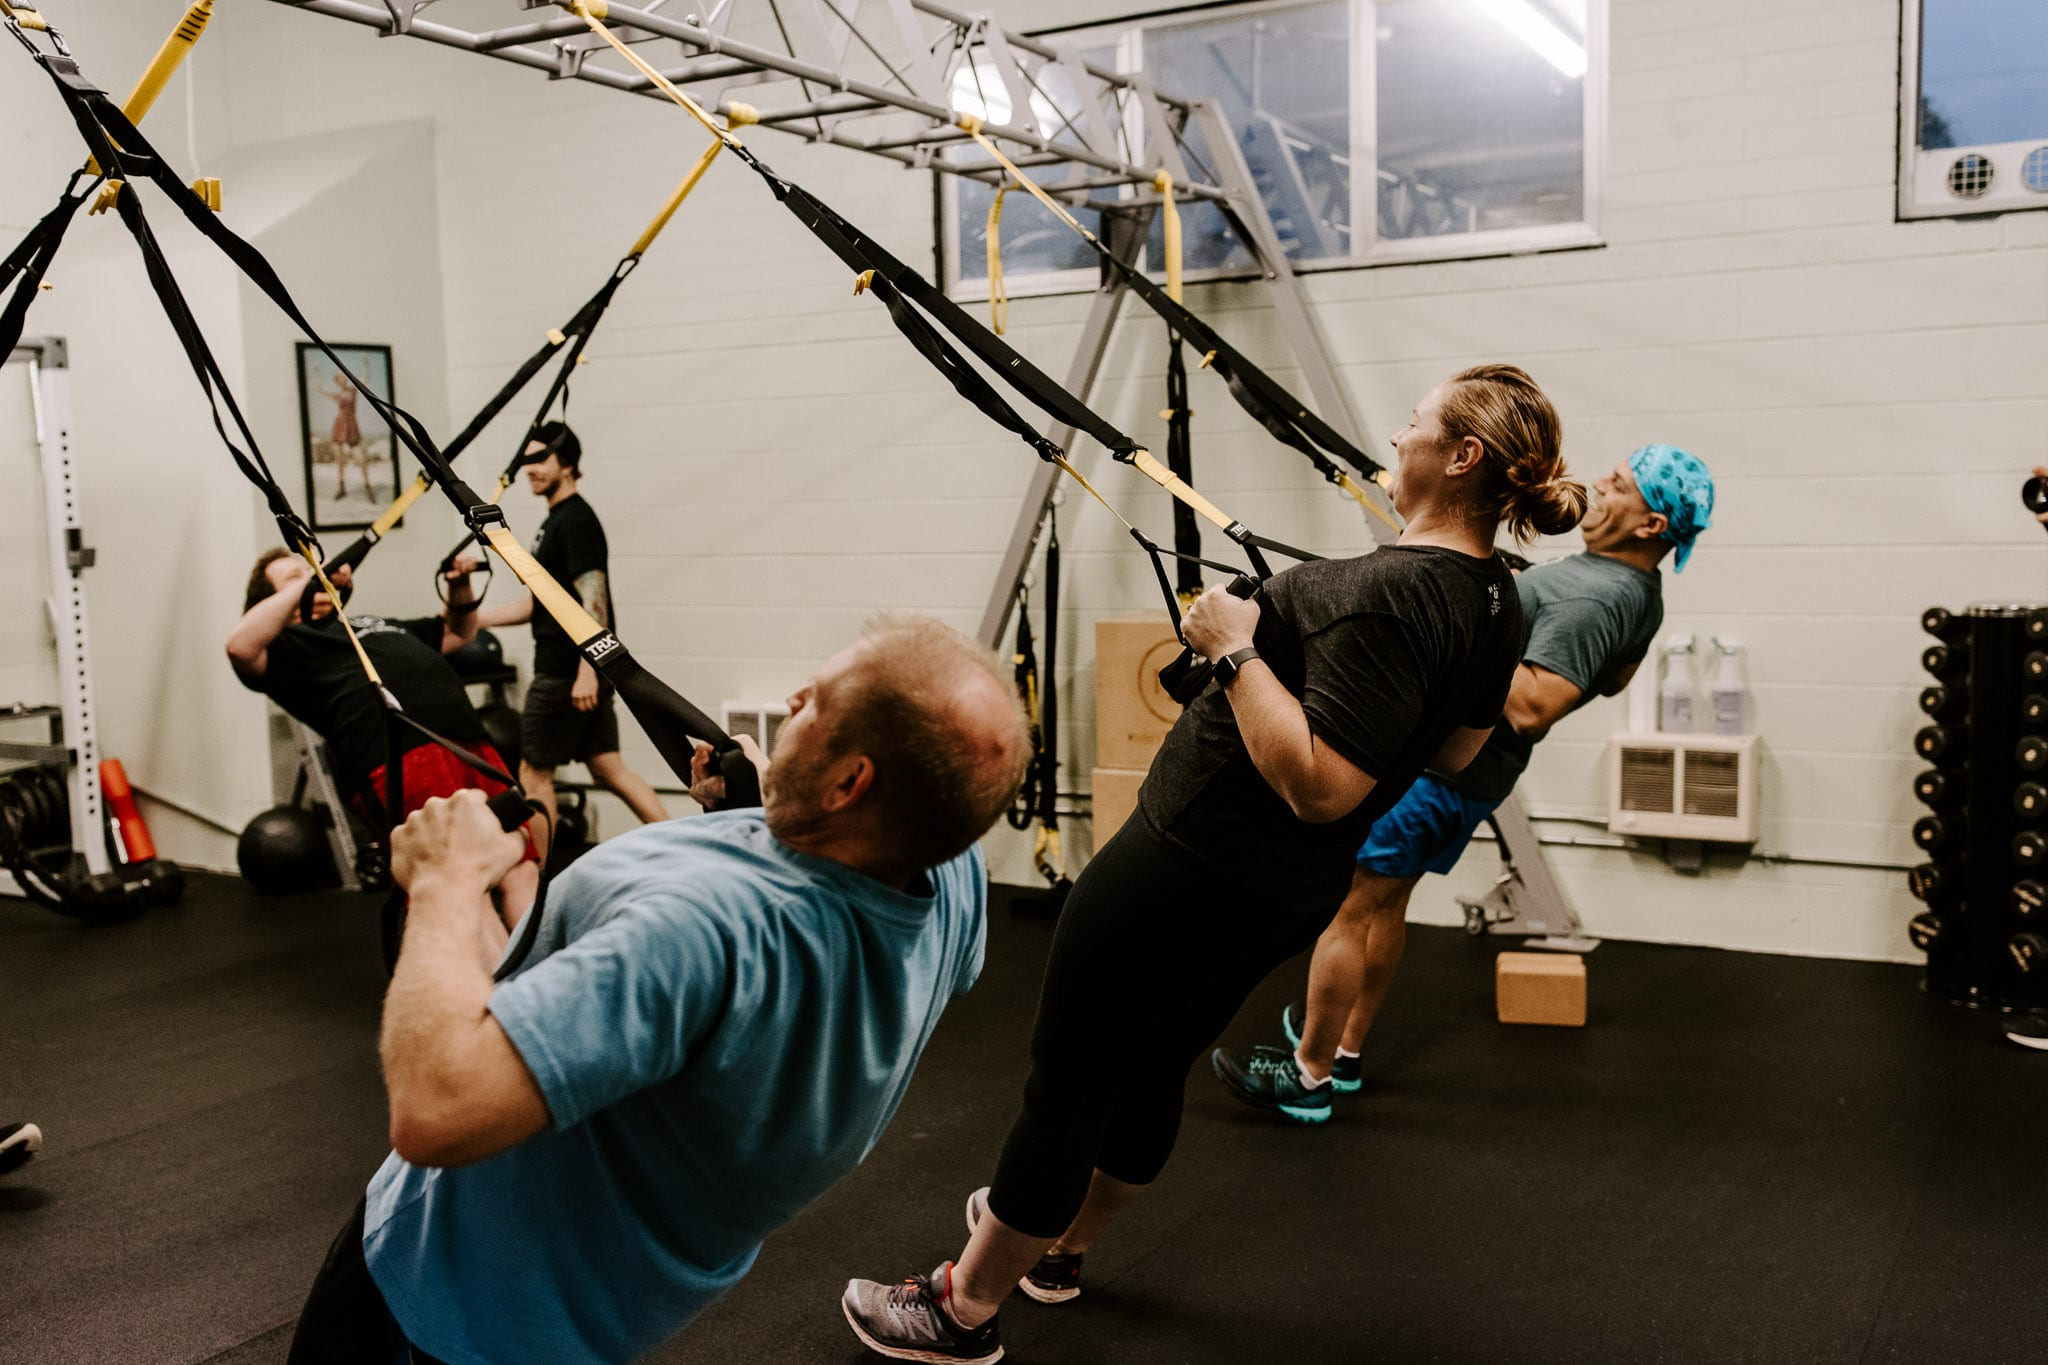 Group fitness workouts are cost-effective